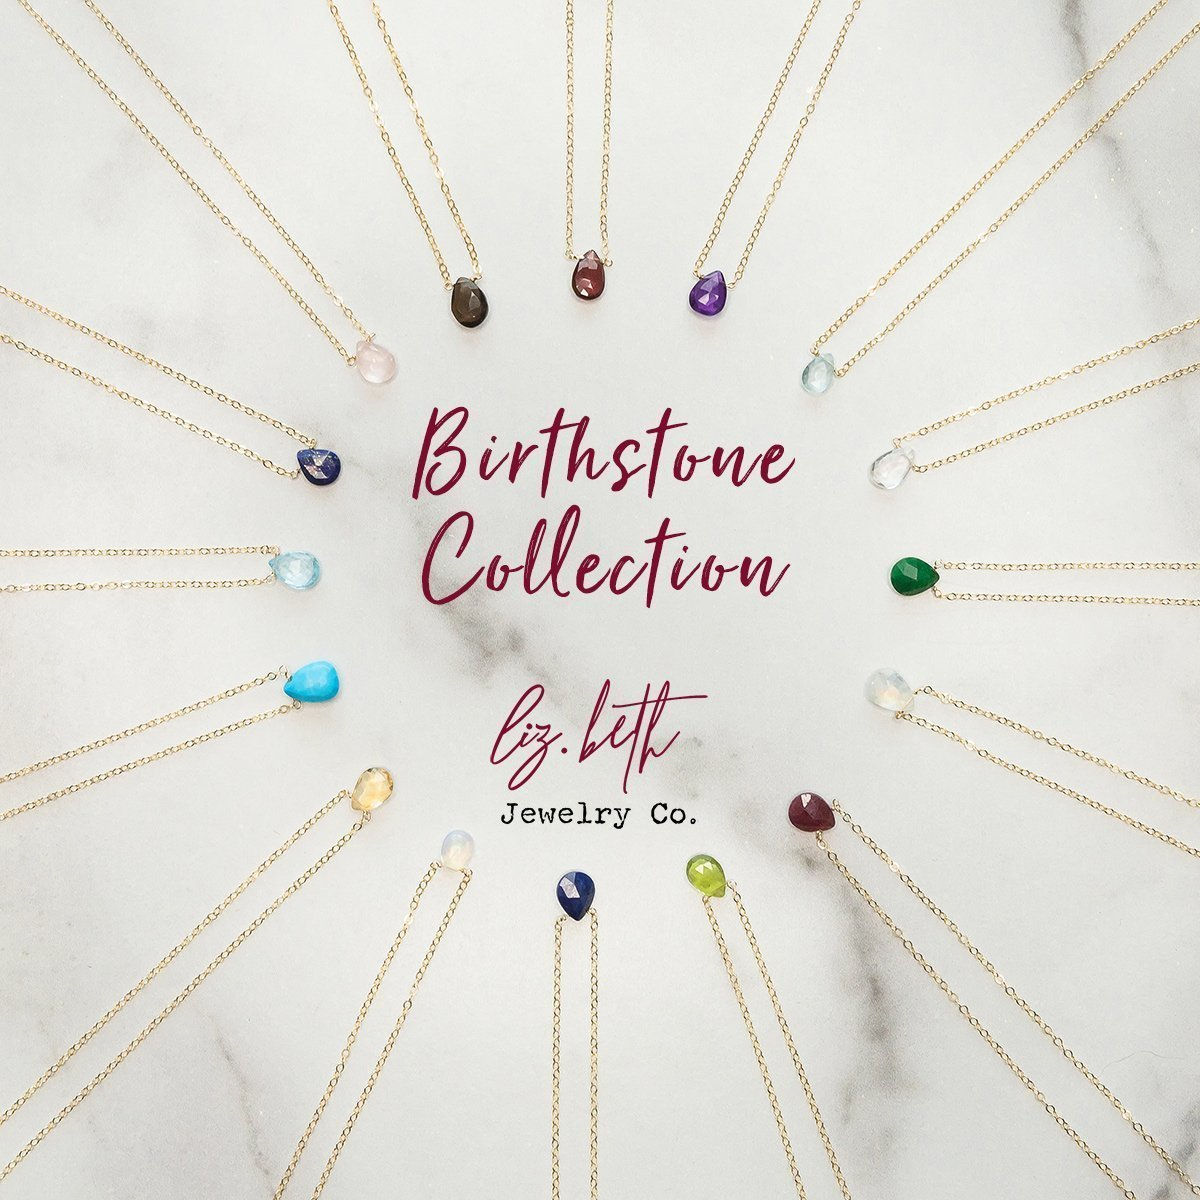 July Ruby Birthstone Necklace Liz.Beth Jewelry Co.